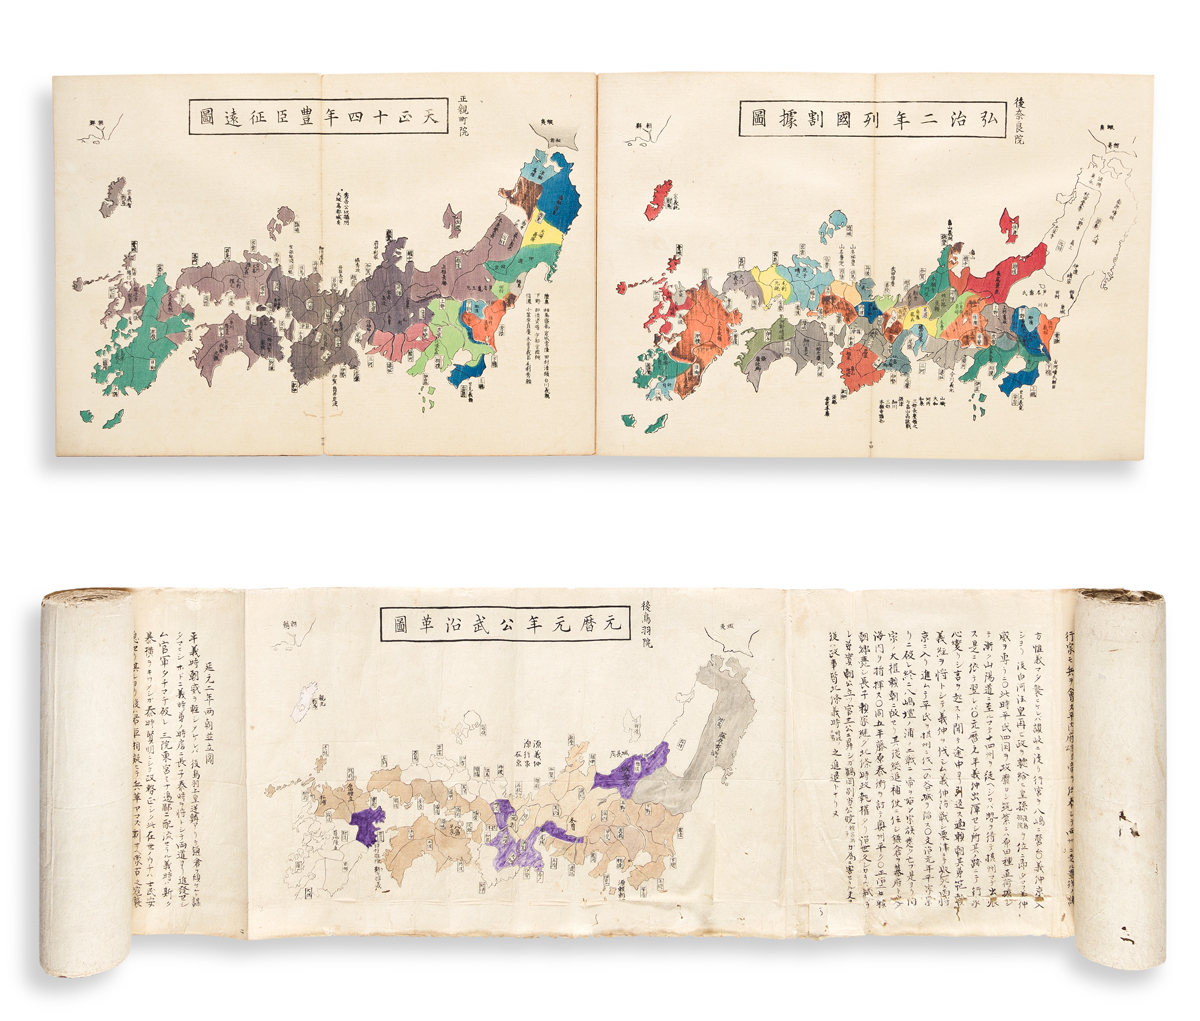 (JAPAN.) Bunka era manuscript scroll with 11 colored differentiations of Japanese feudal Daimyo land holdings.